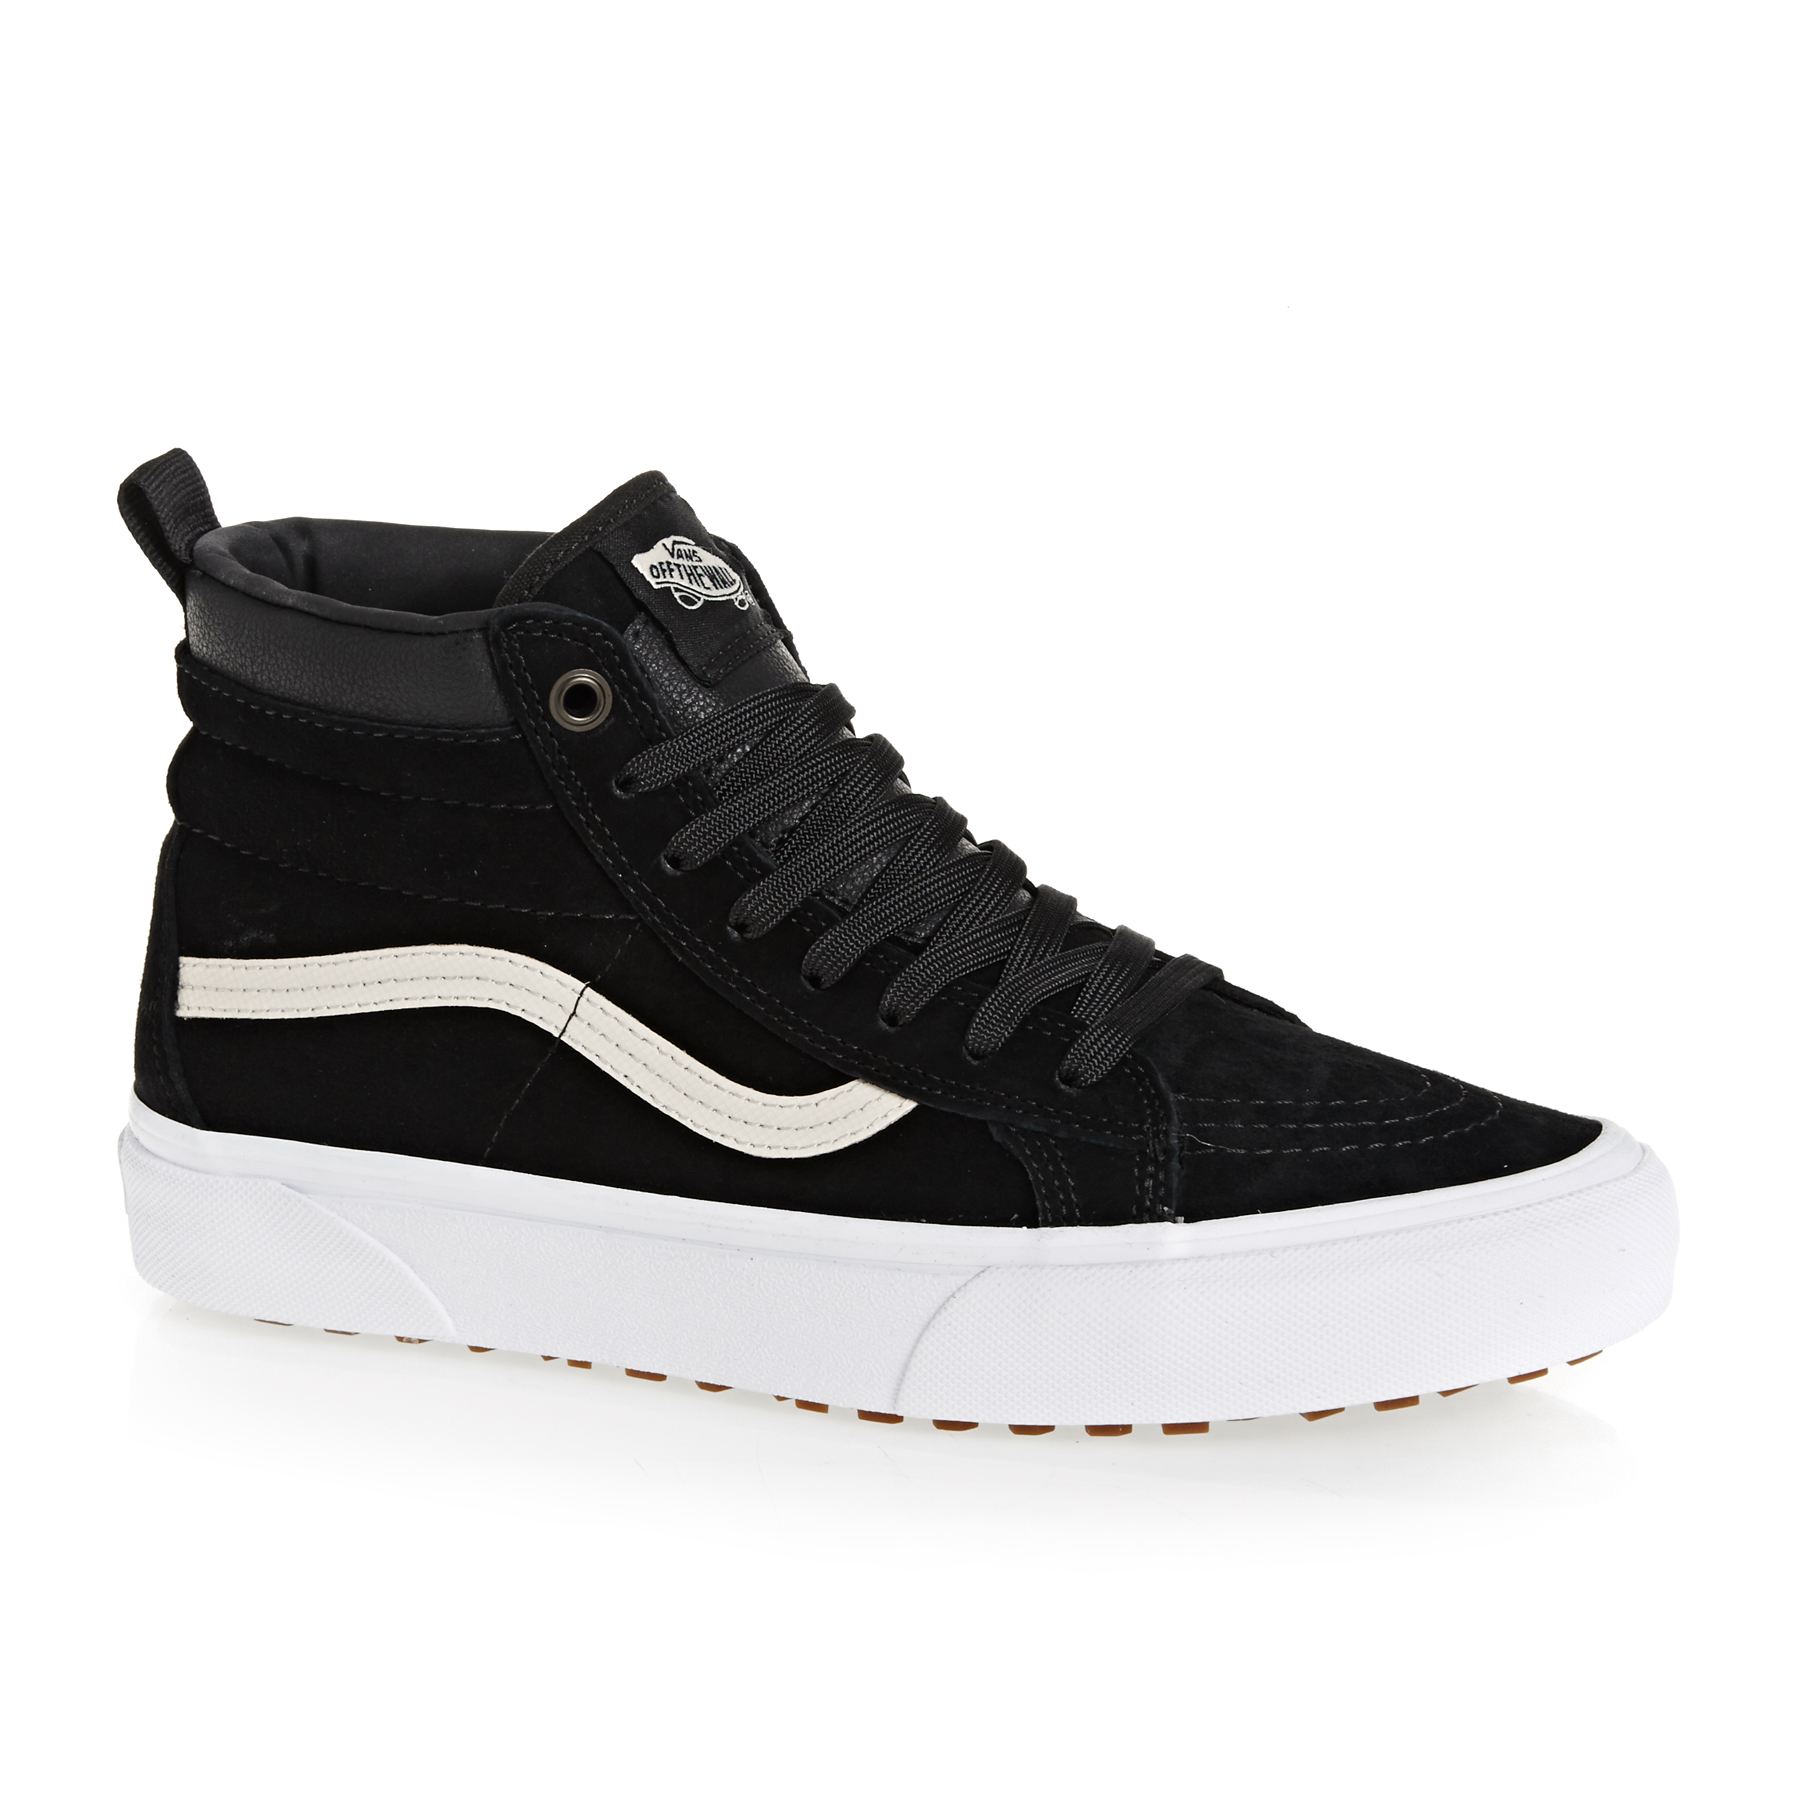 Vans Sk8 Hi MTE Shoes Free Delivery options on All Orders